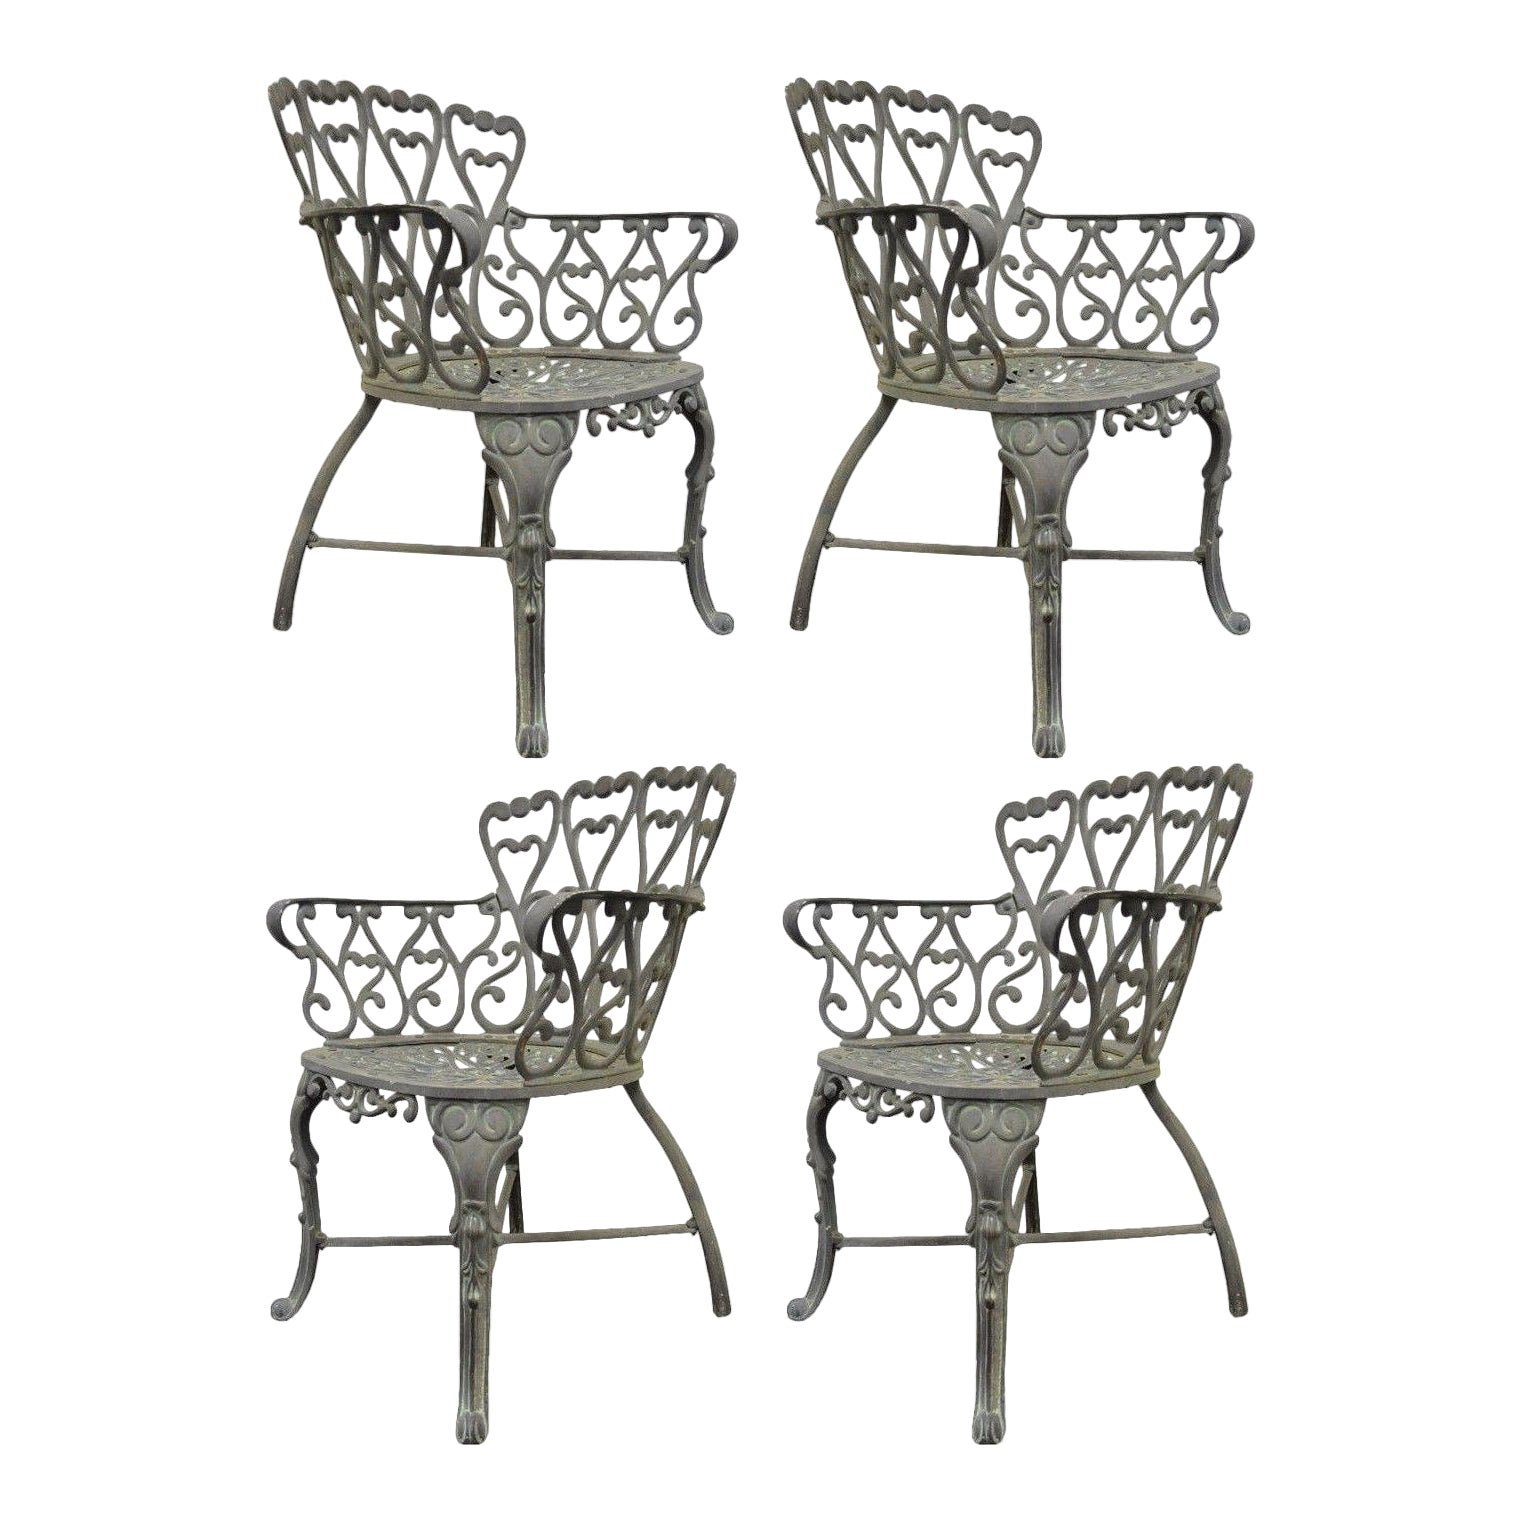 Vintage Cast Aluminum Heart Back French Style Patio Chairs